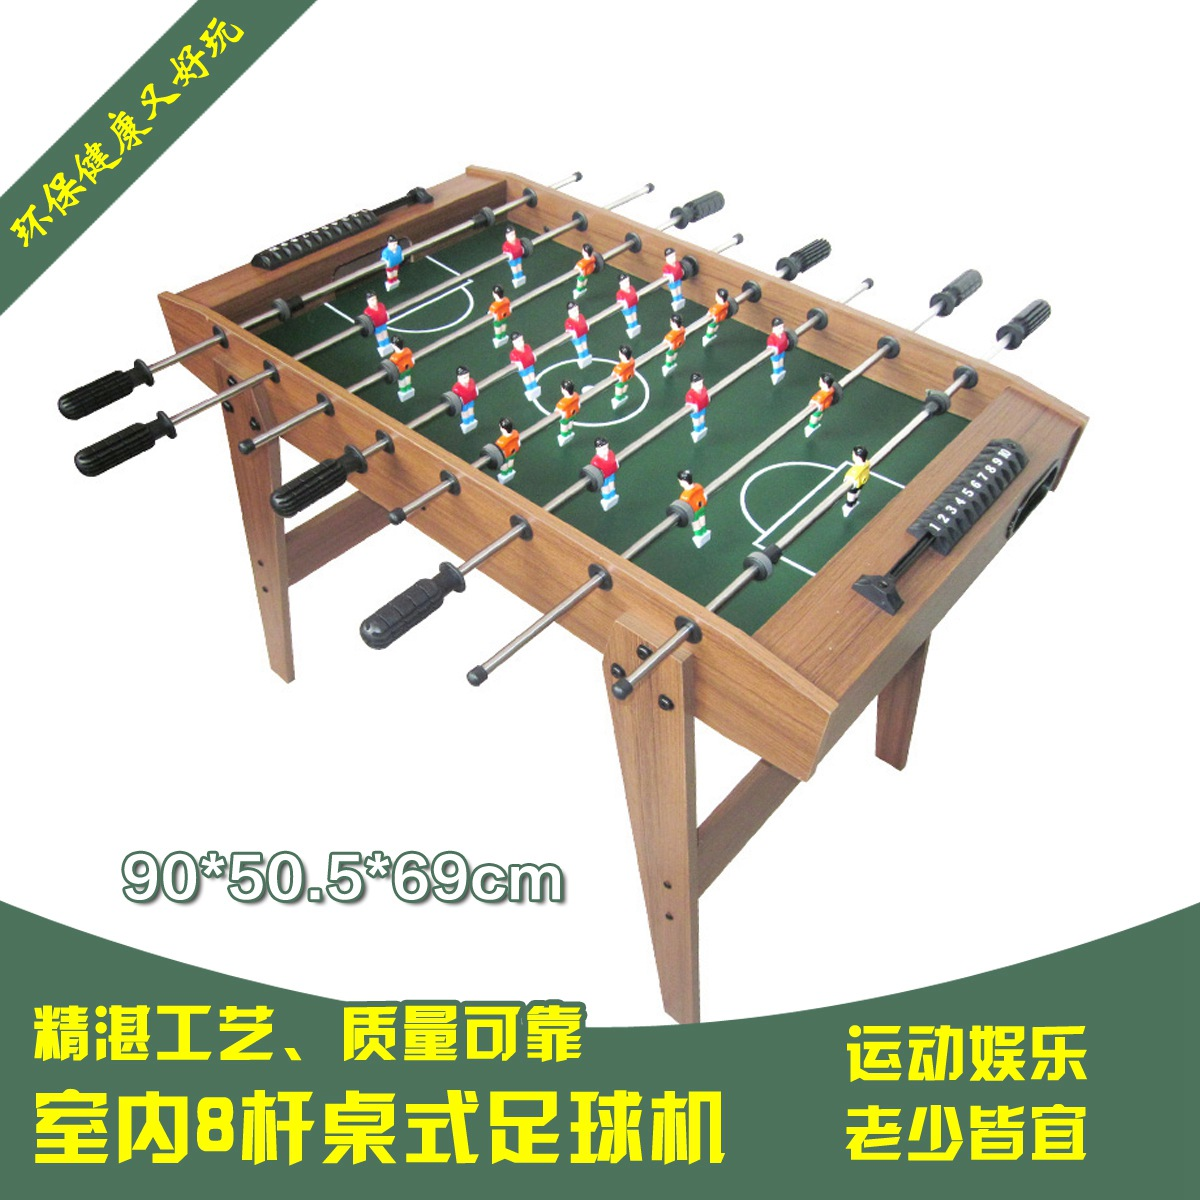 8 wooden pole indoor soccer foosball table football machine interactive tabletop board games paternity fitness toys for boys